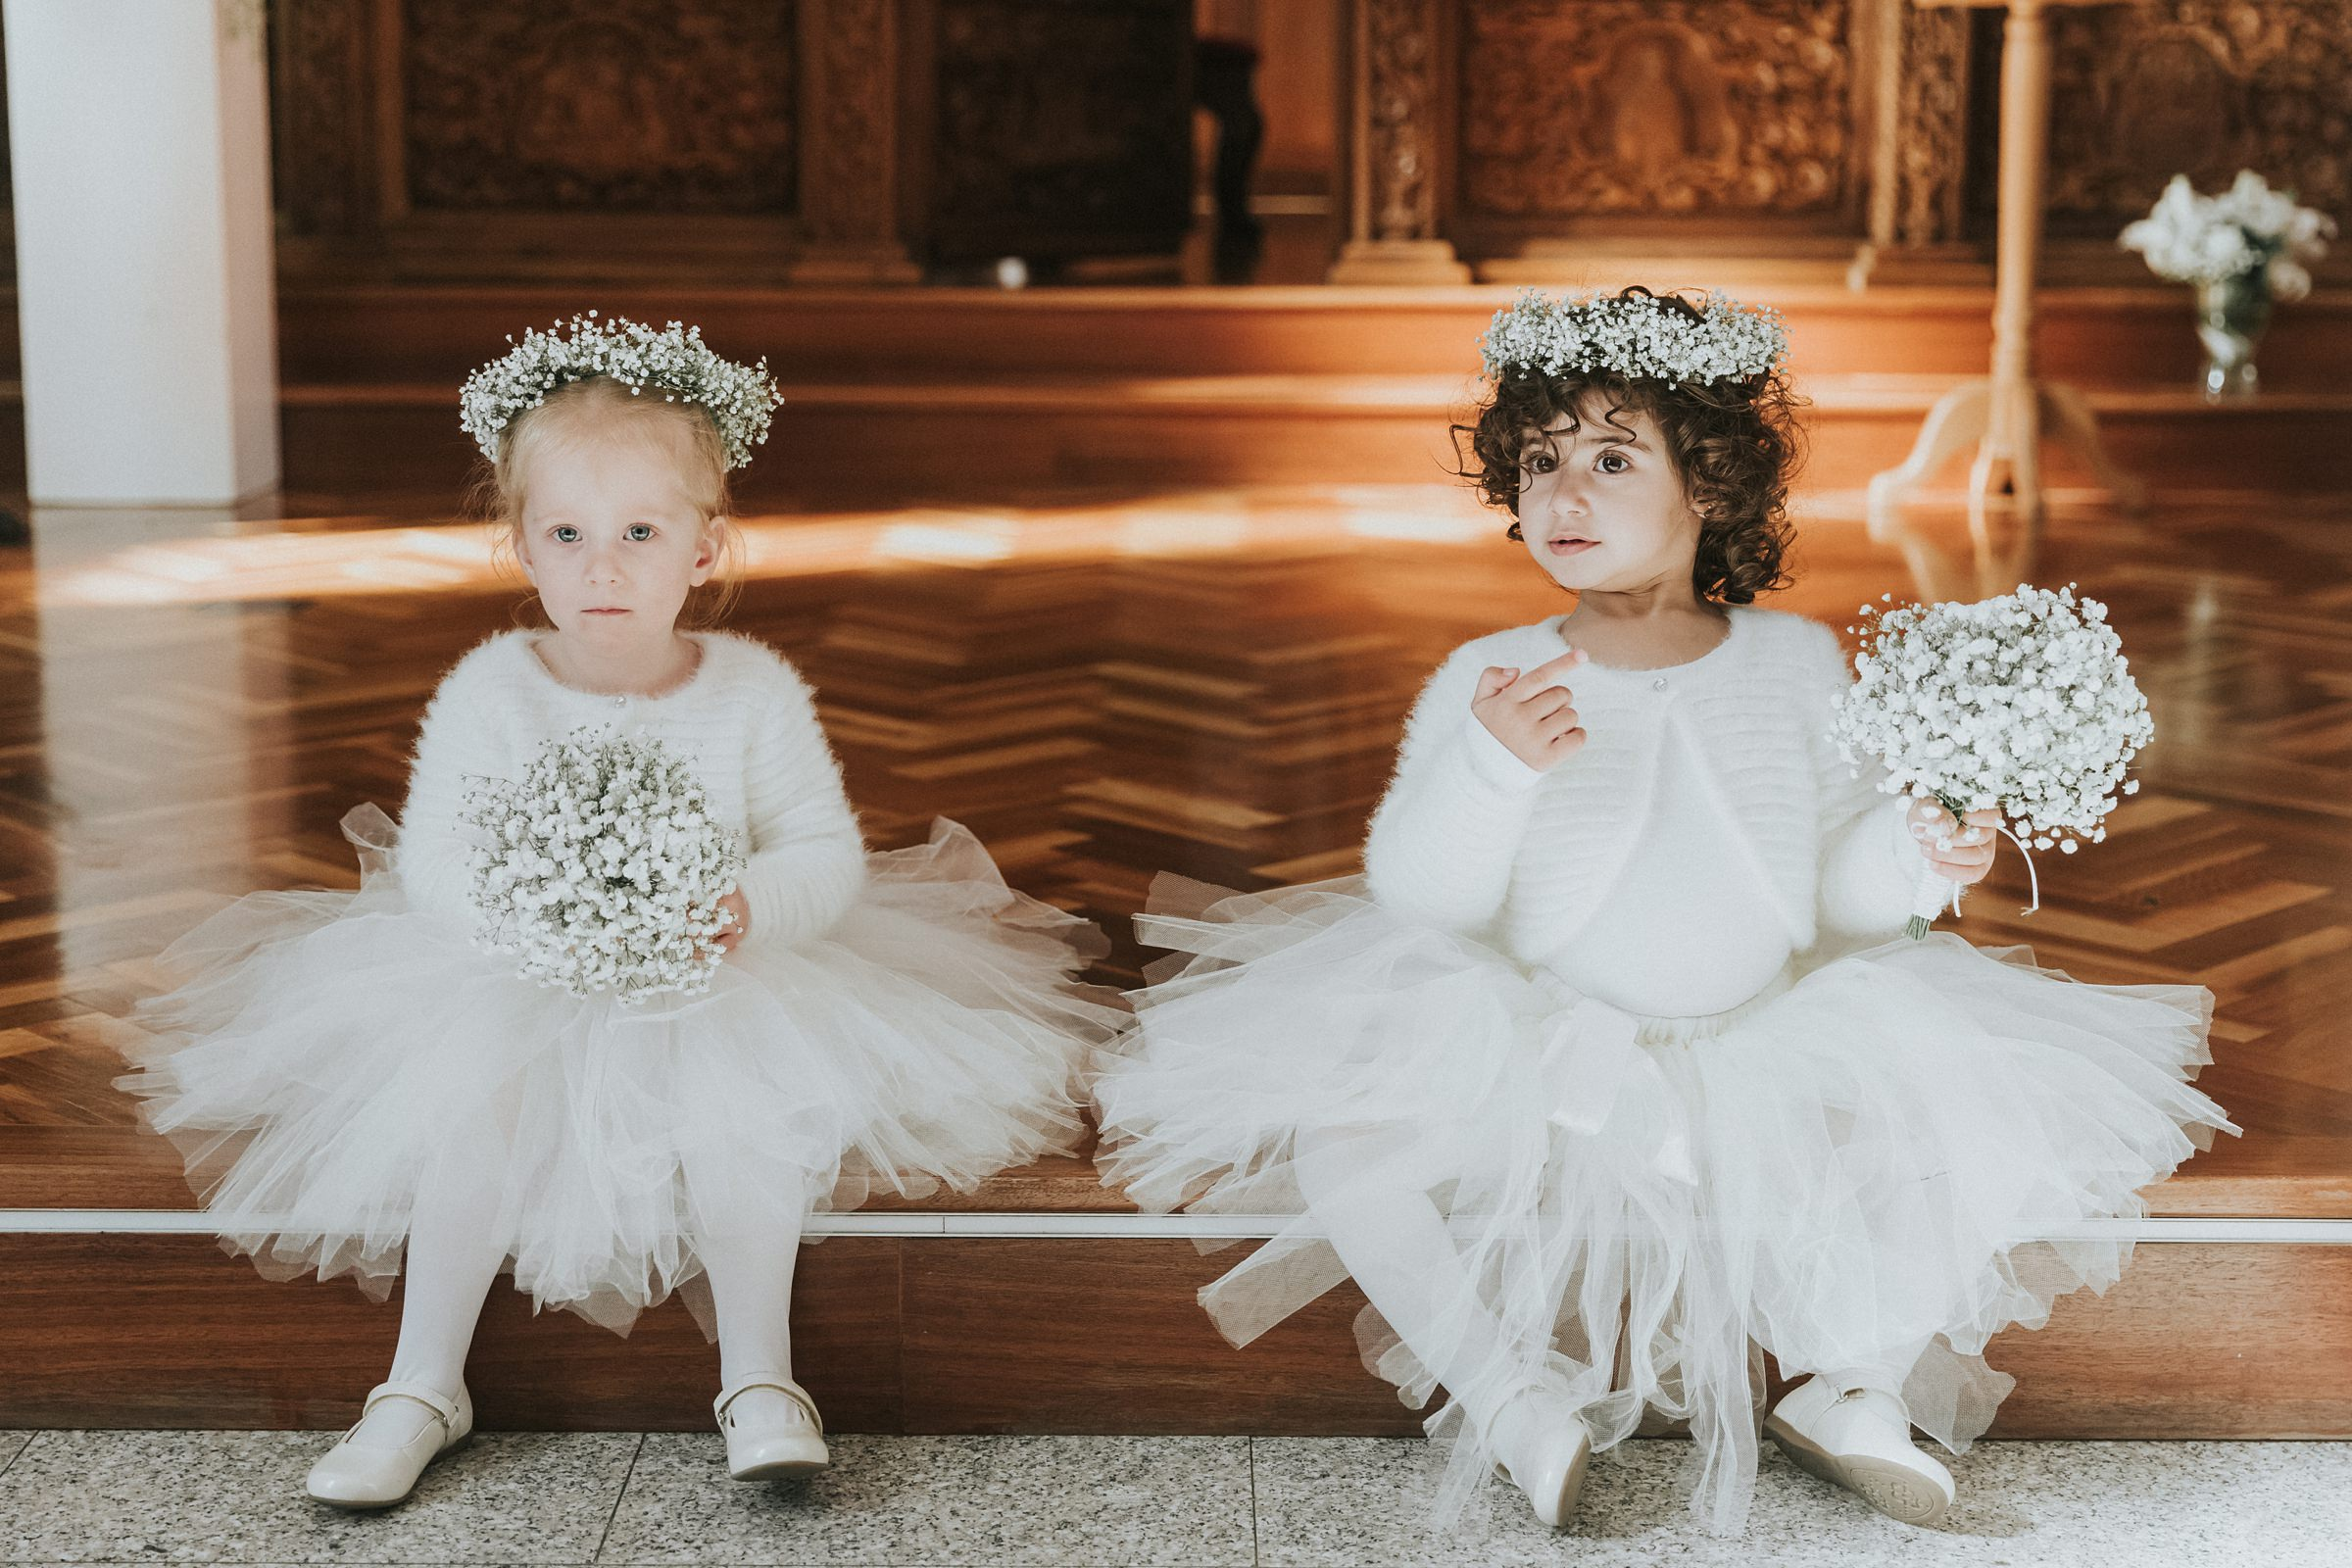 flower girls during wedding ceremony in orthodox church